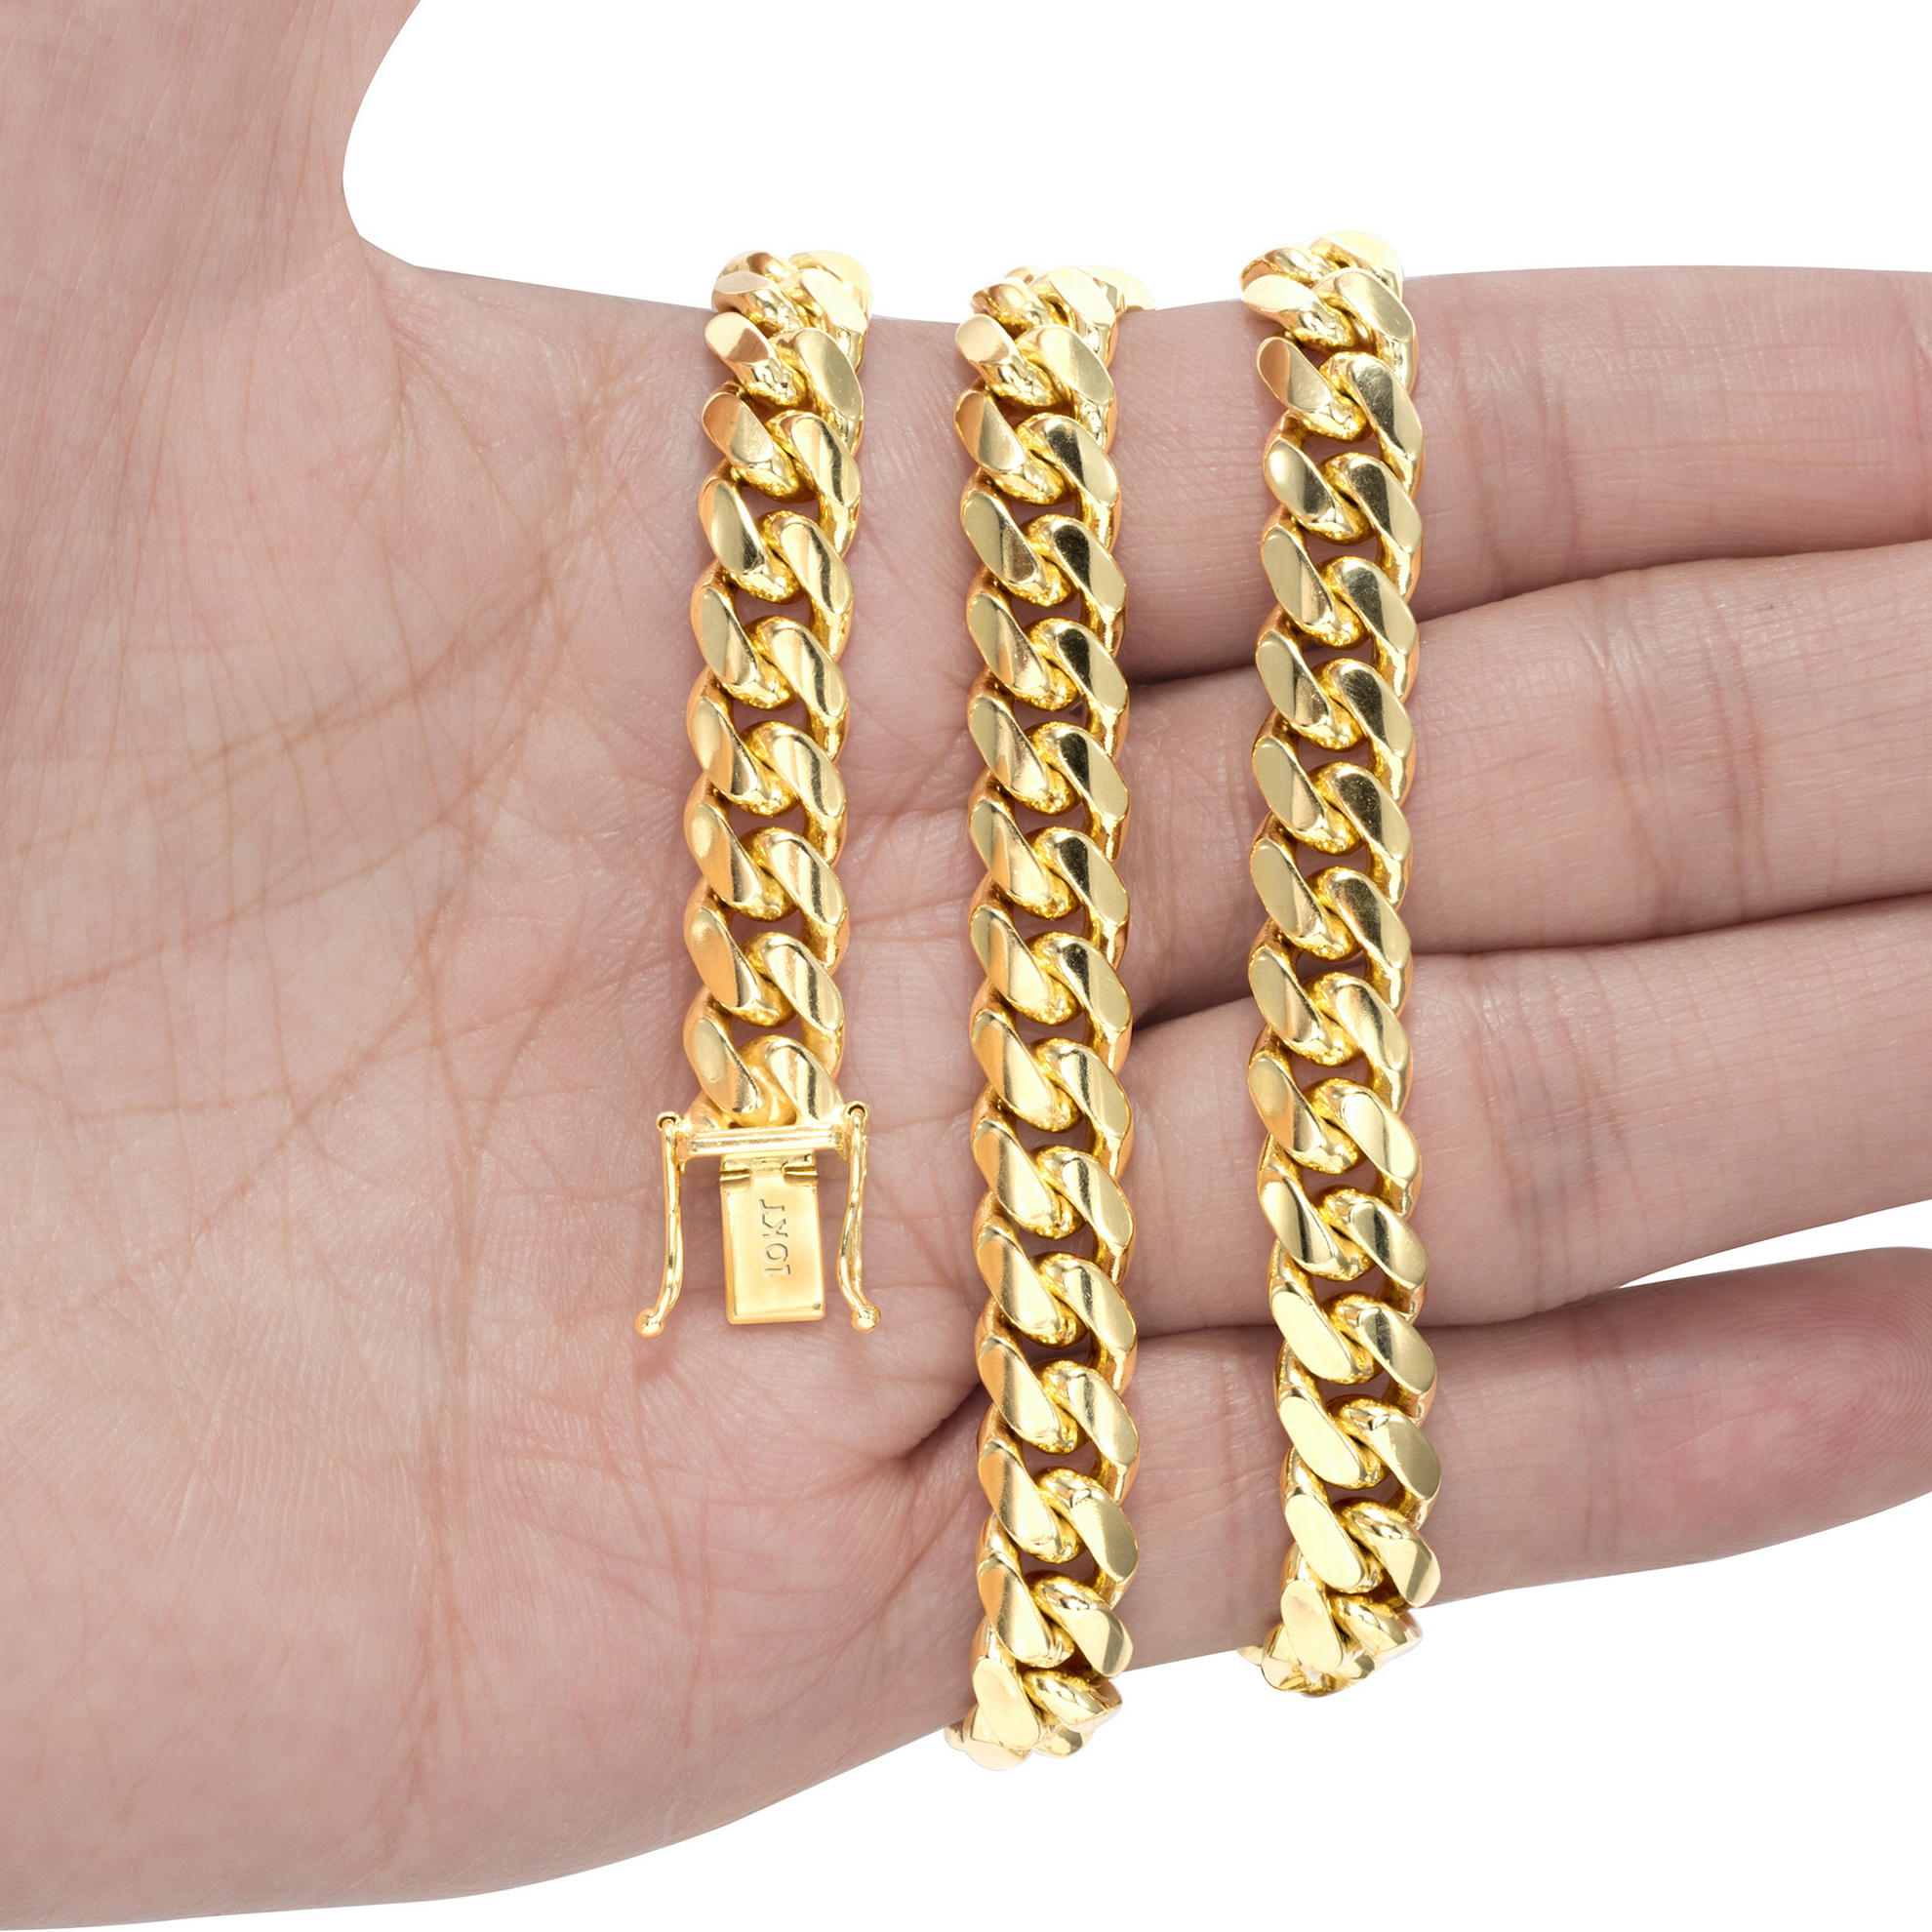 10K-Yellow-Gold-Solid-2-7mm-10mm-Miami-Cuban-Link-Chain-Necklace-Bracelet-7-034-30-034 thumbnail 26